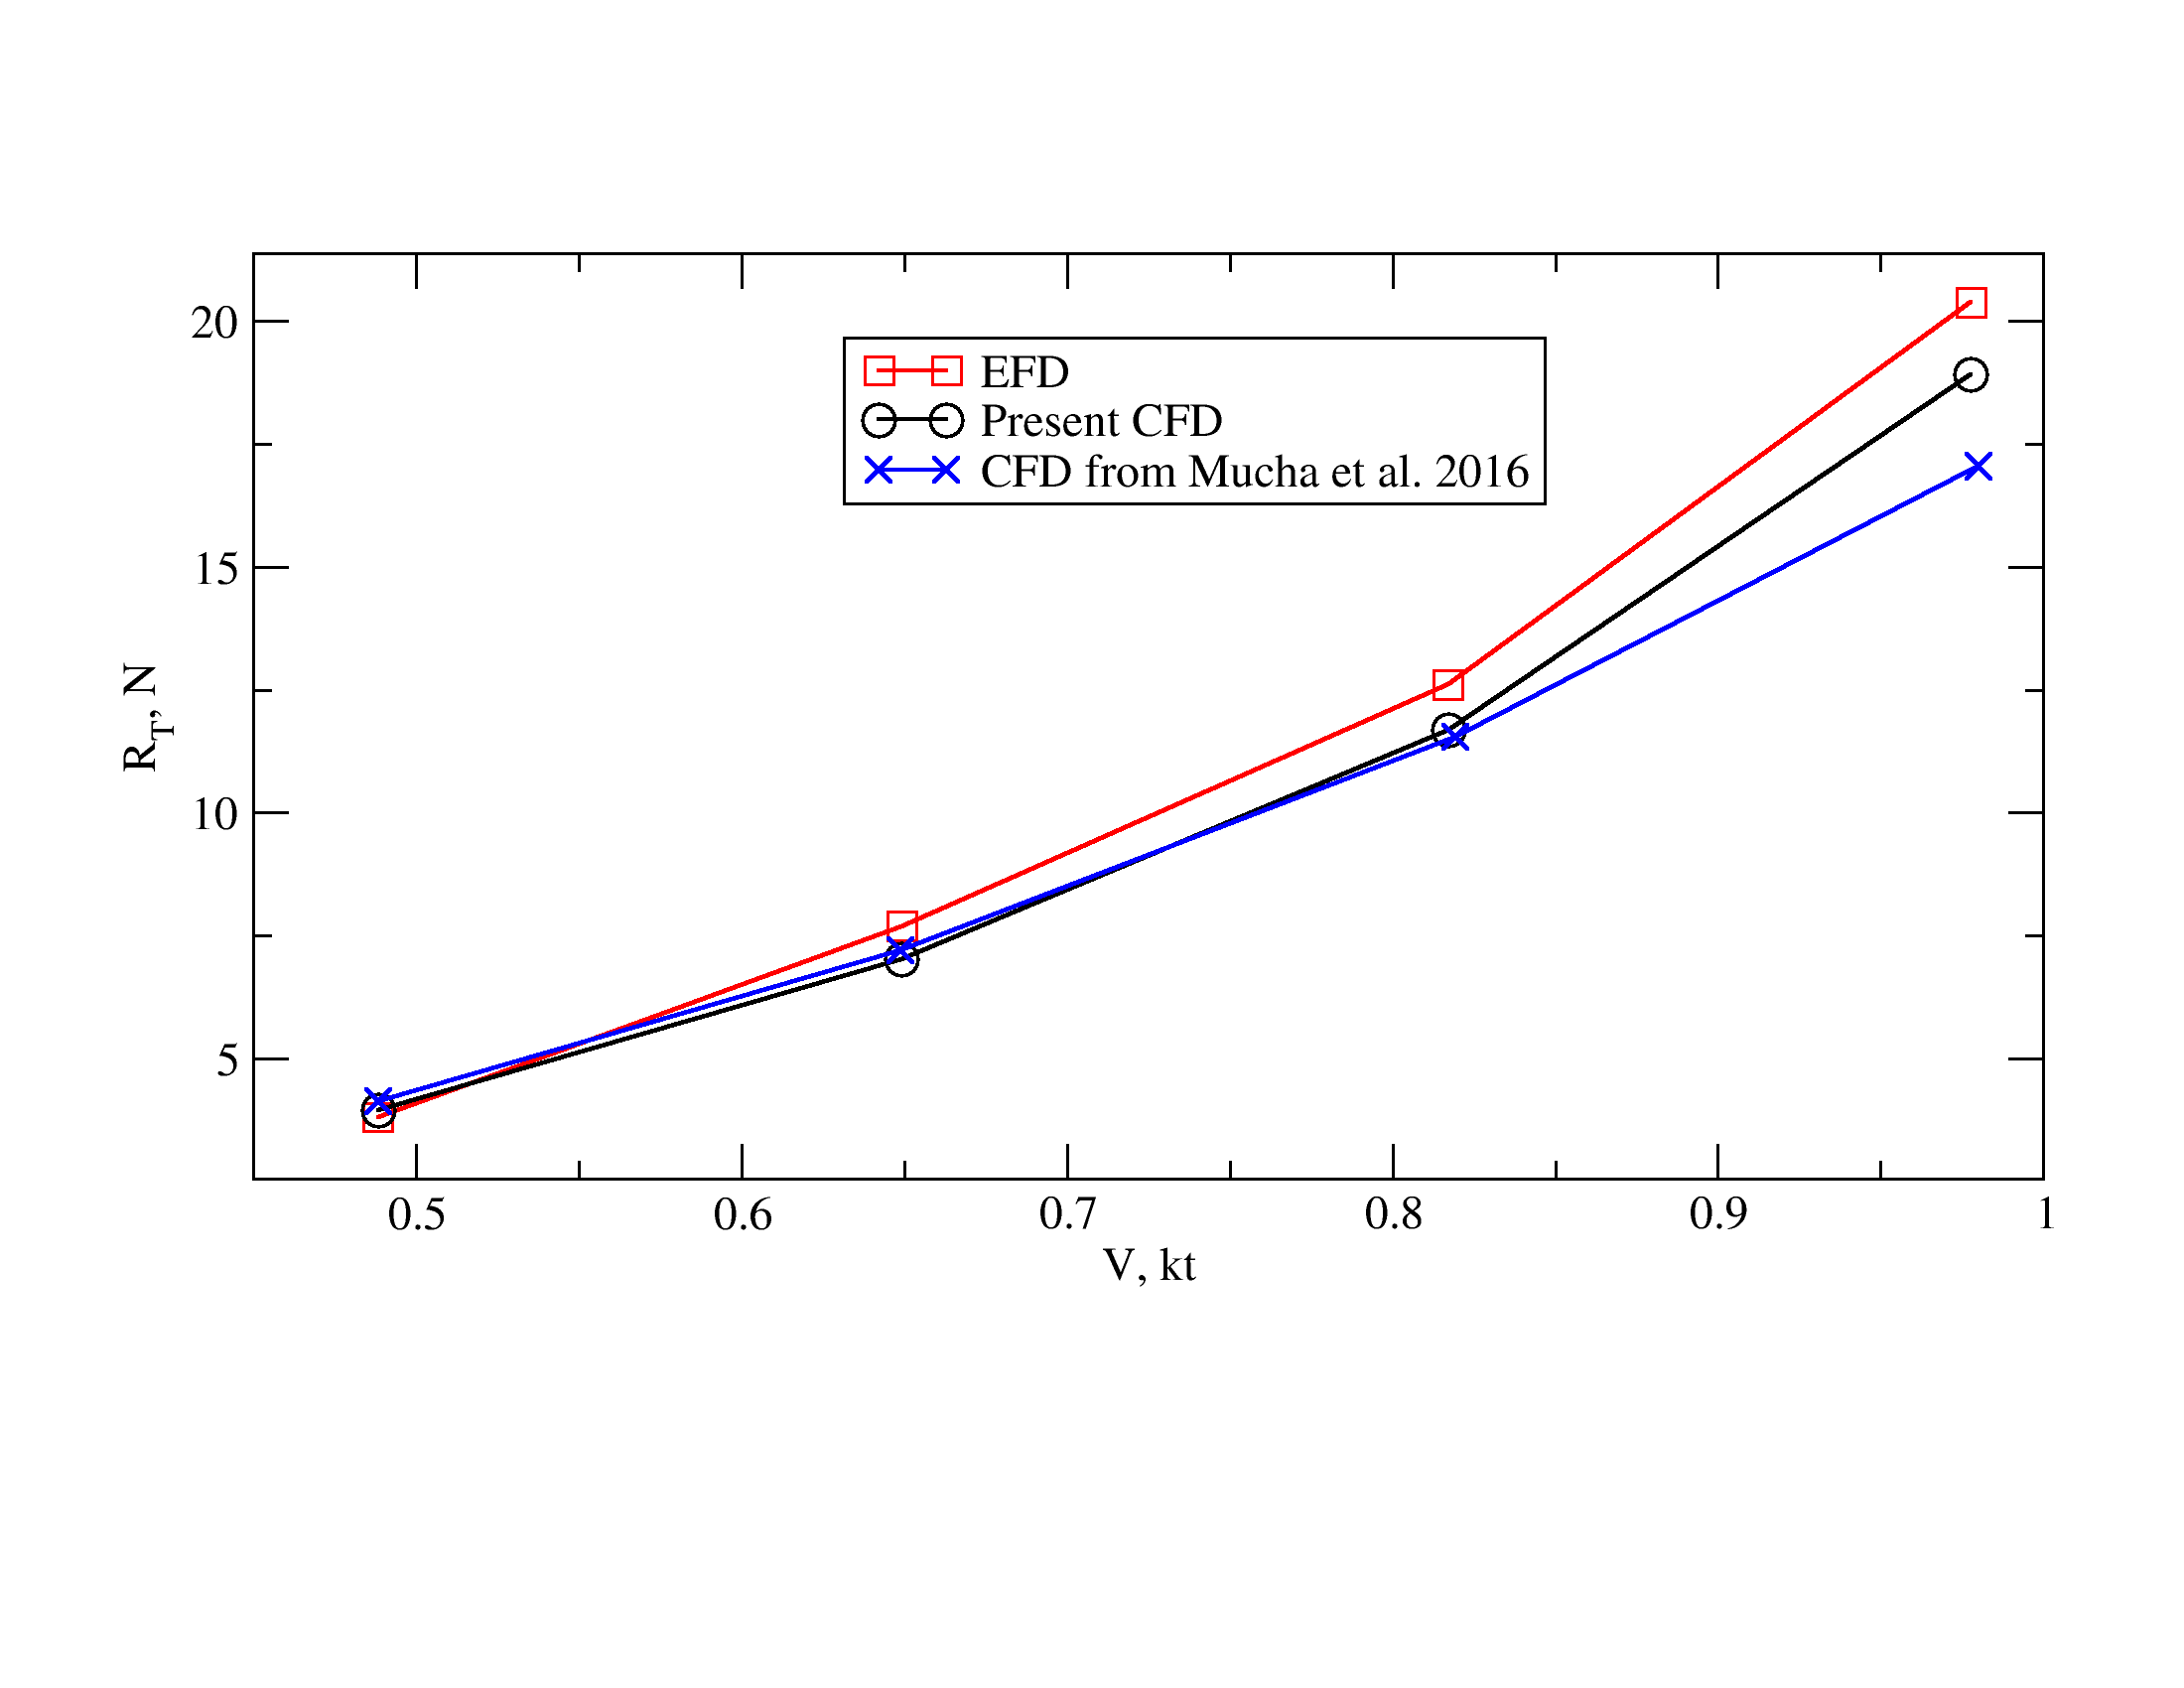 Comparison of ship resistance in shallow water between the experiment and CFD